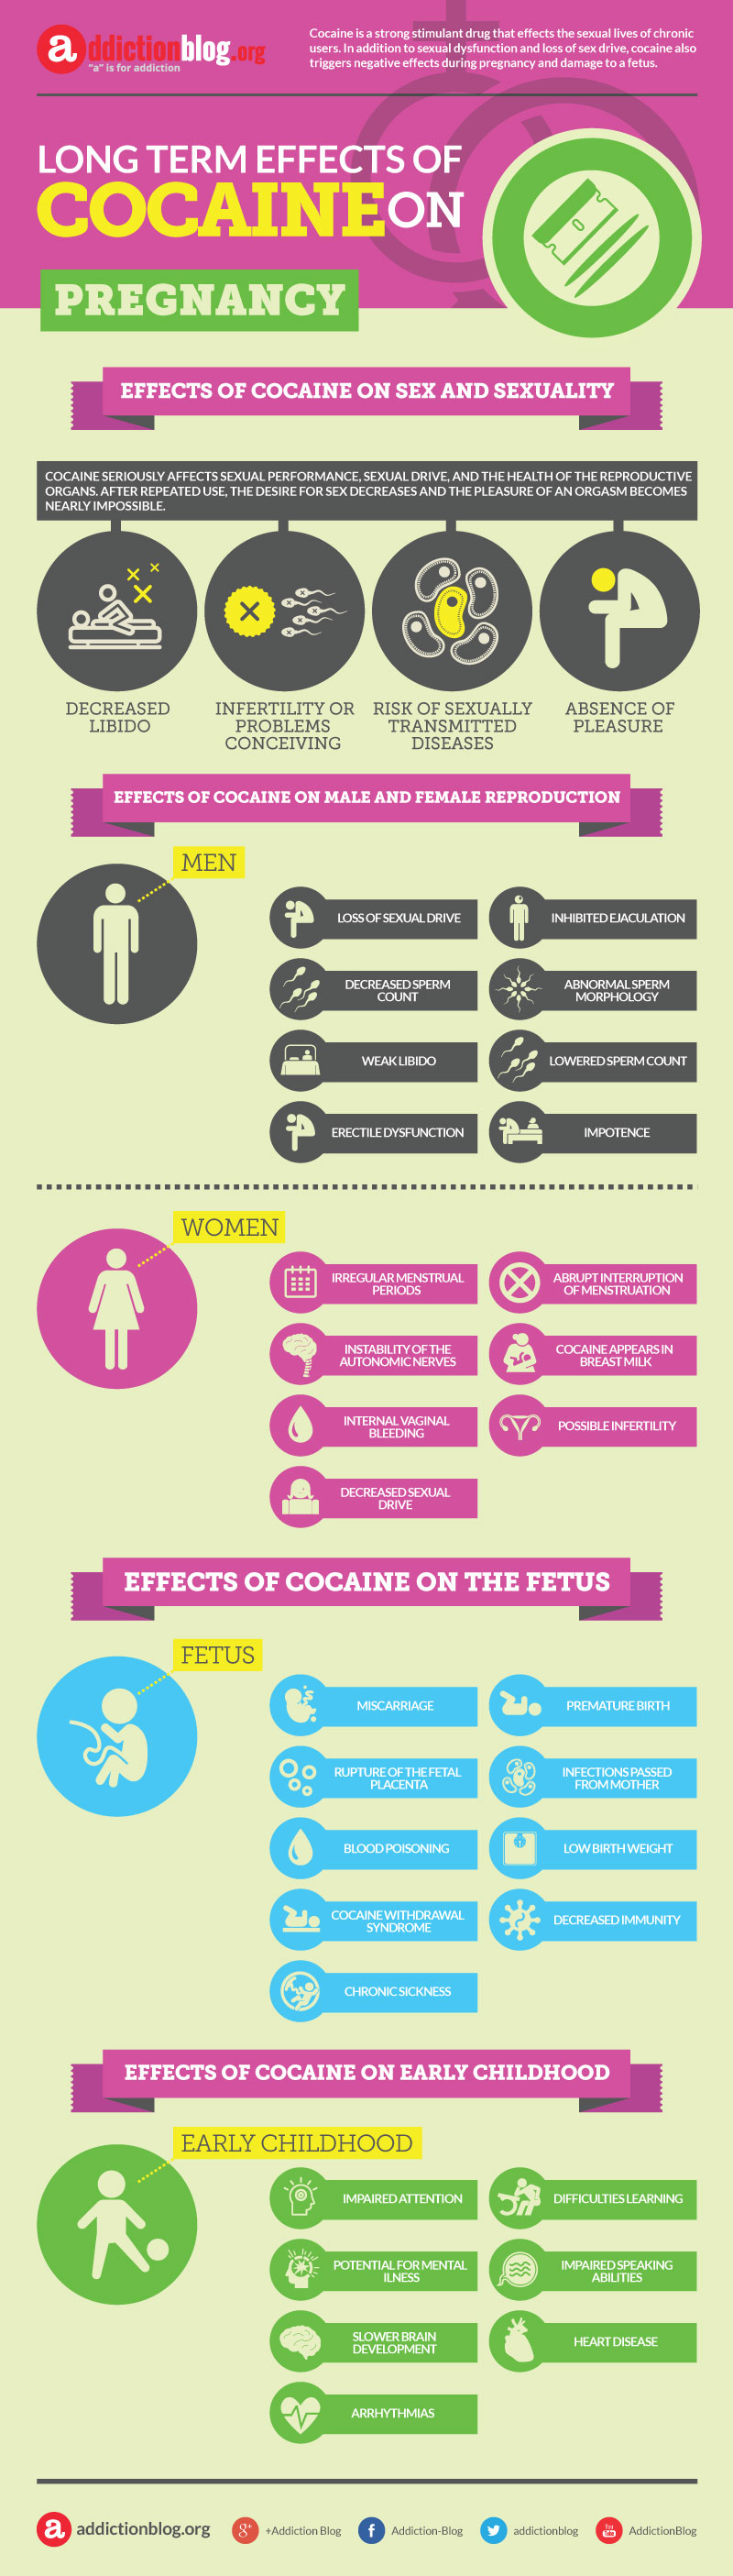 Long term effects of cocaine on pregnancy (INFOGRAPHIC)